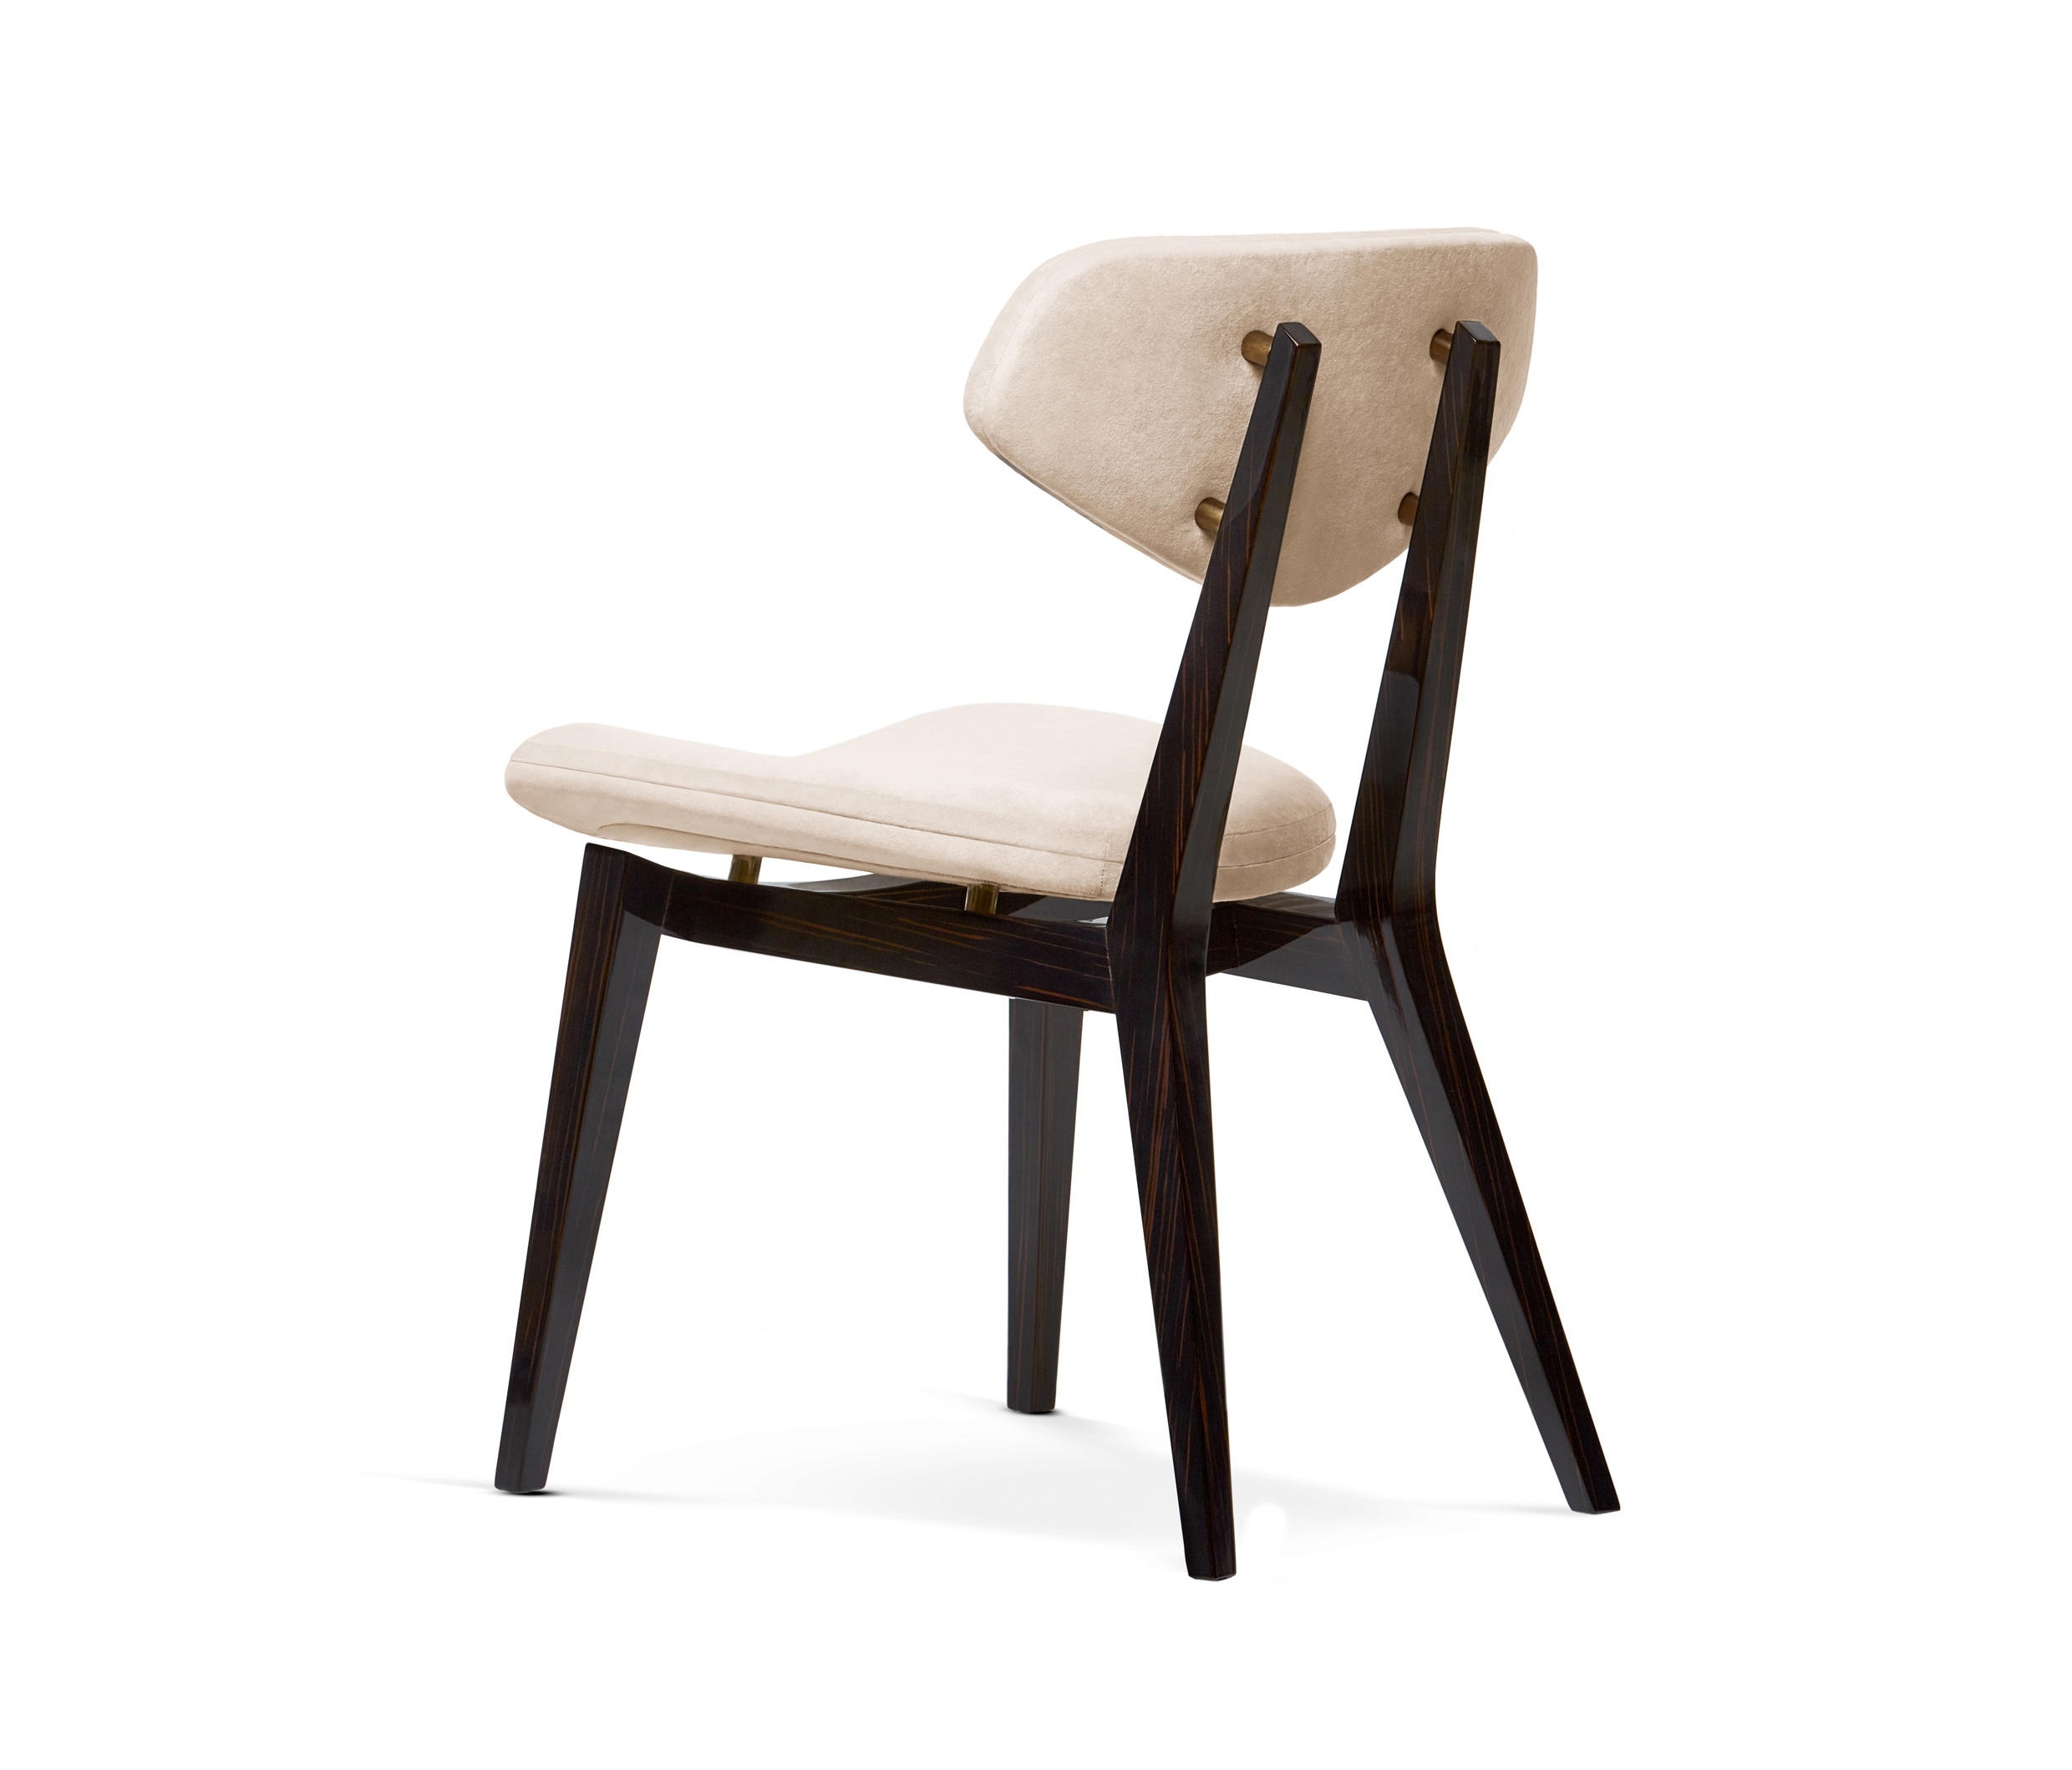 COLEMAN CHAIR Restaurant chairs from MUNNA